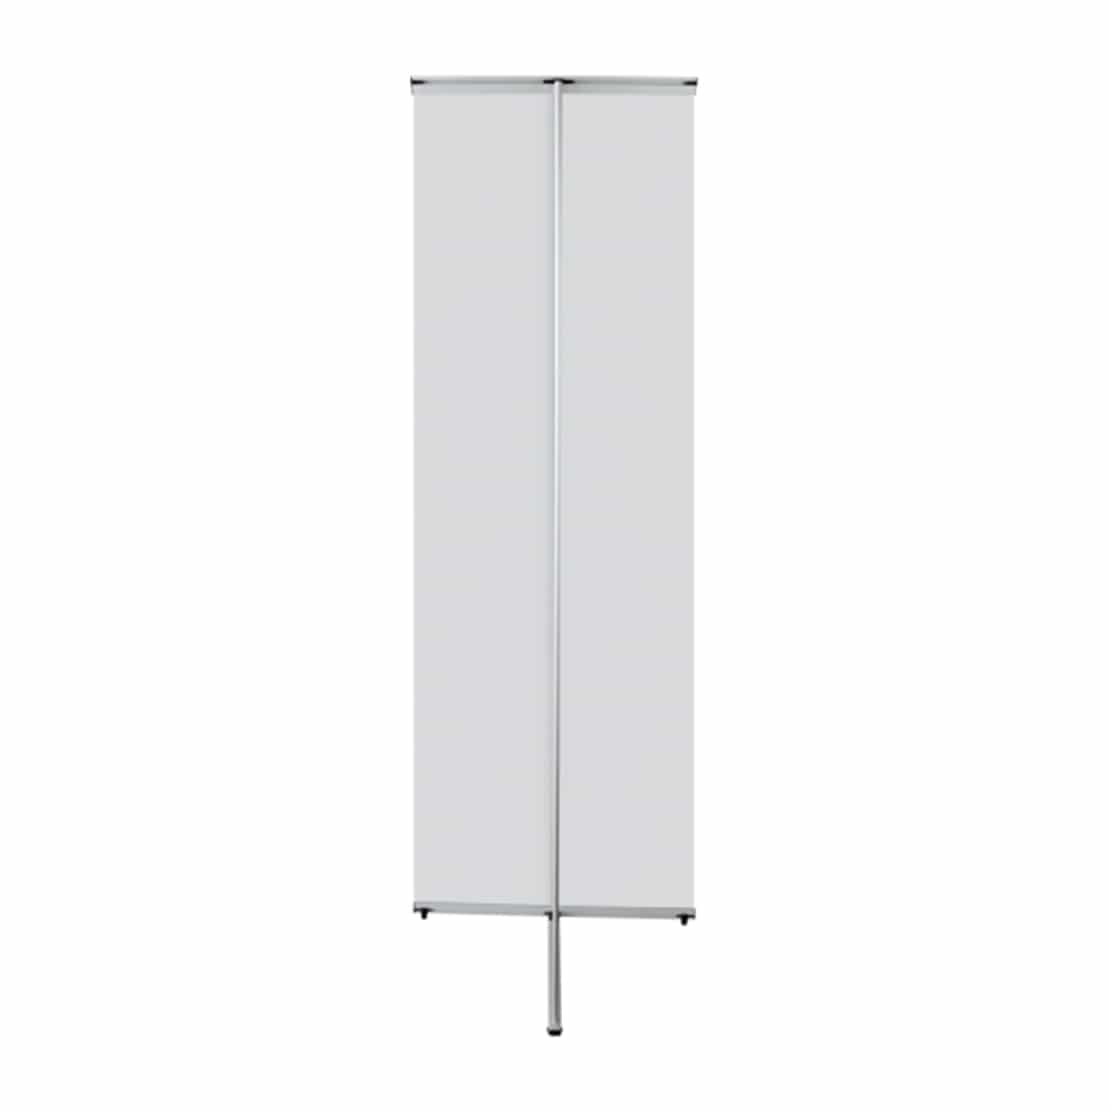 lightning banner stand display backside view with pole and graphics bars